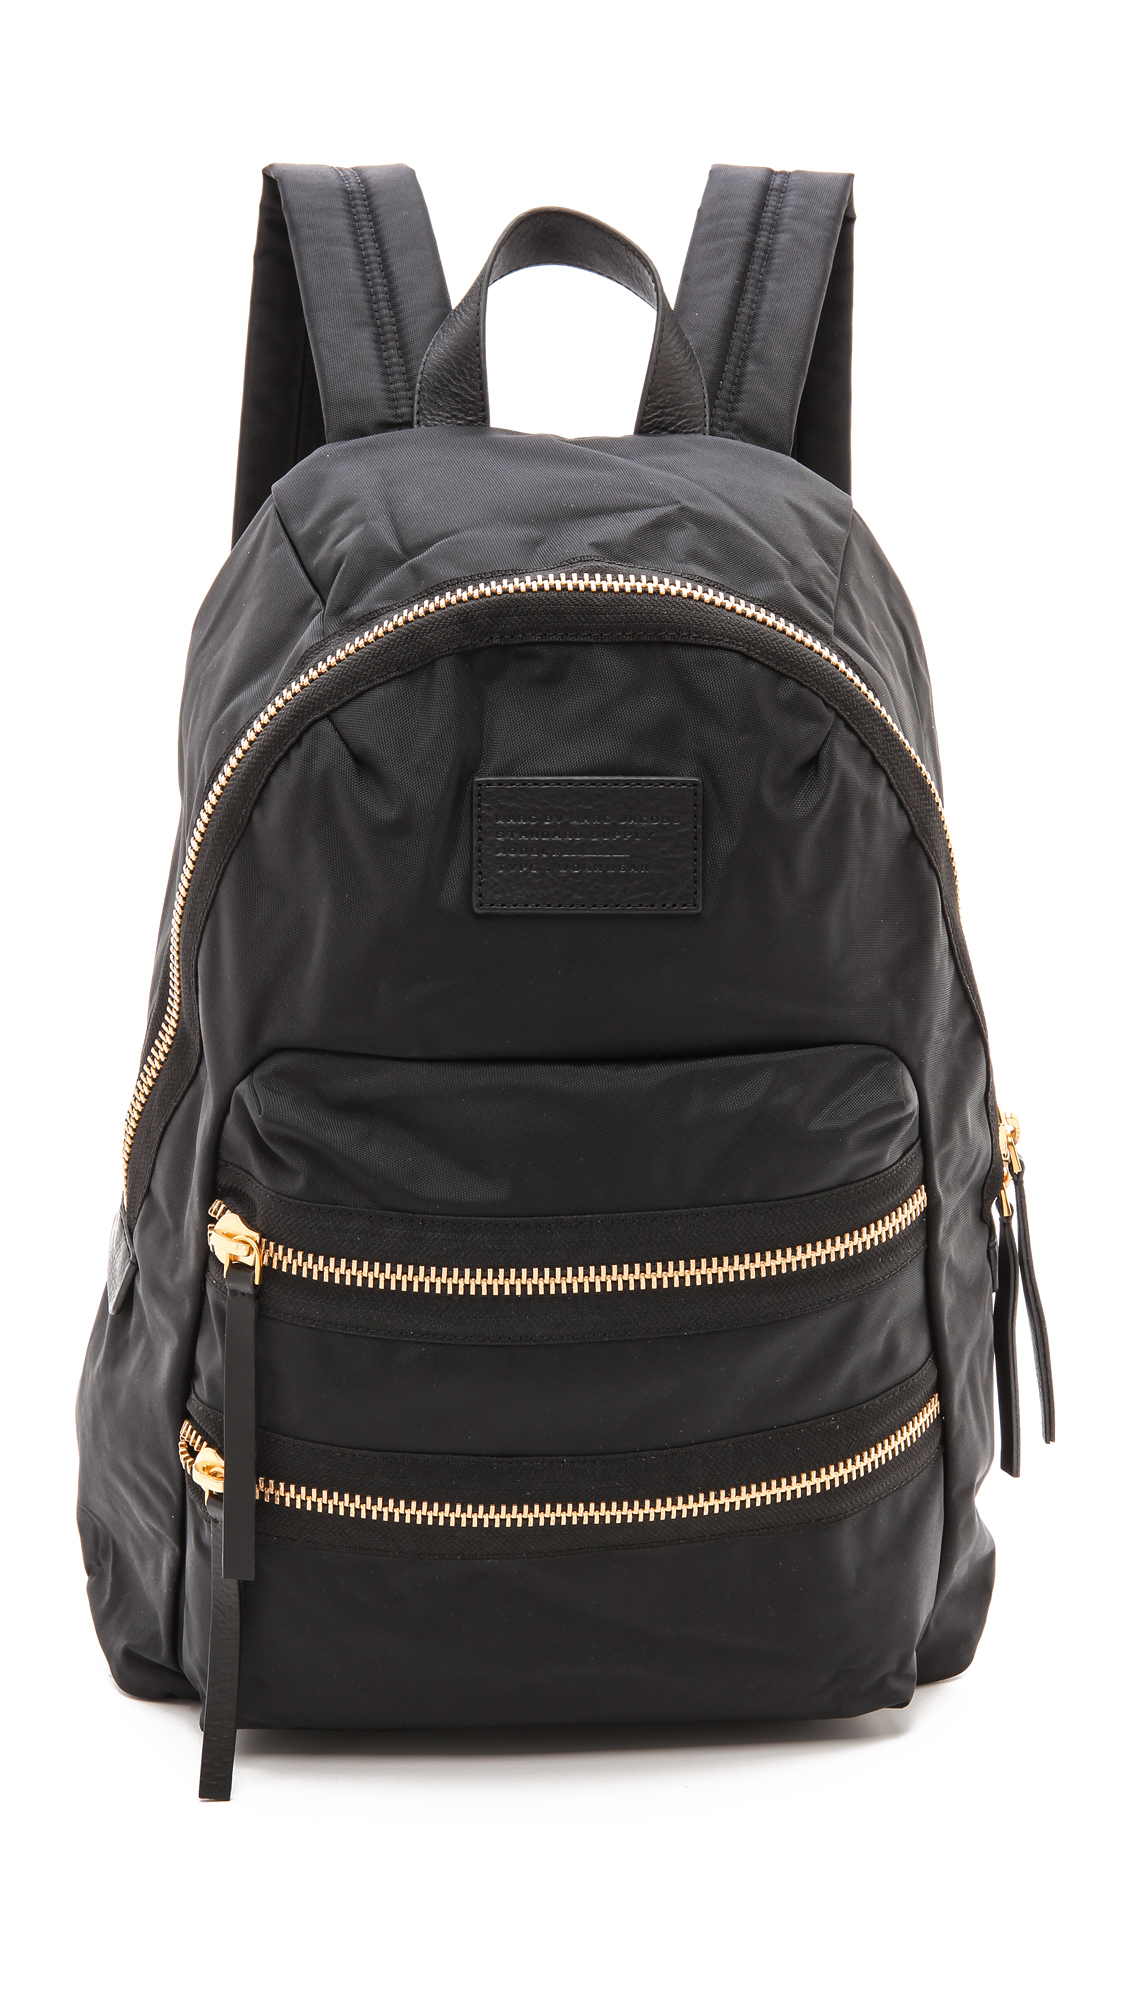 lyst marc by marc jacobs loco domo packrat backpack in black. Black Bedroom Furniture Sets. Home Design Ideas